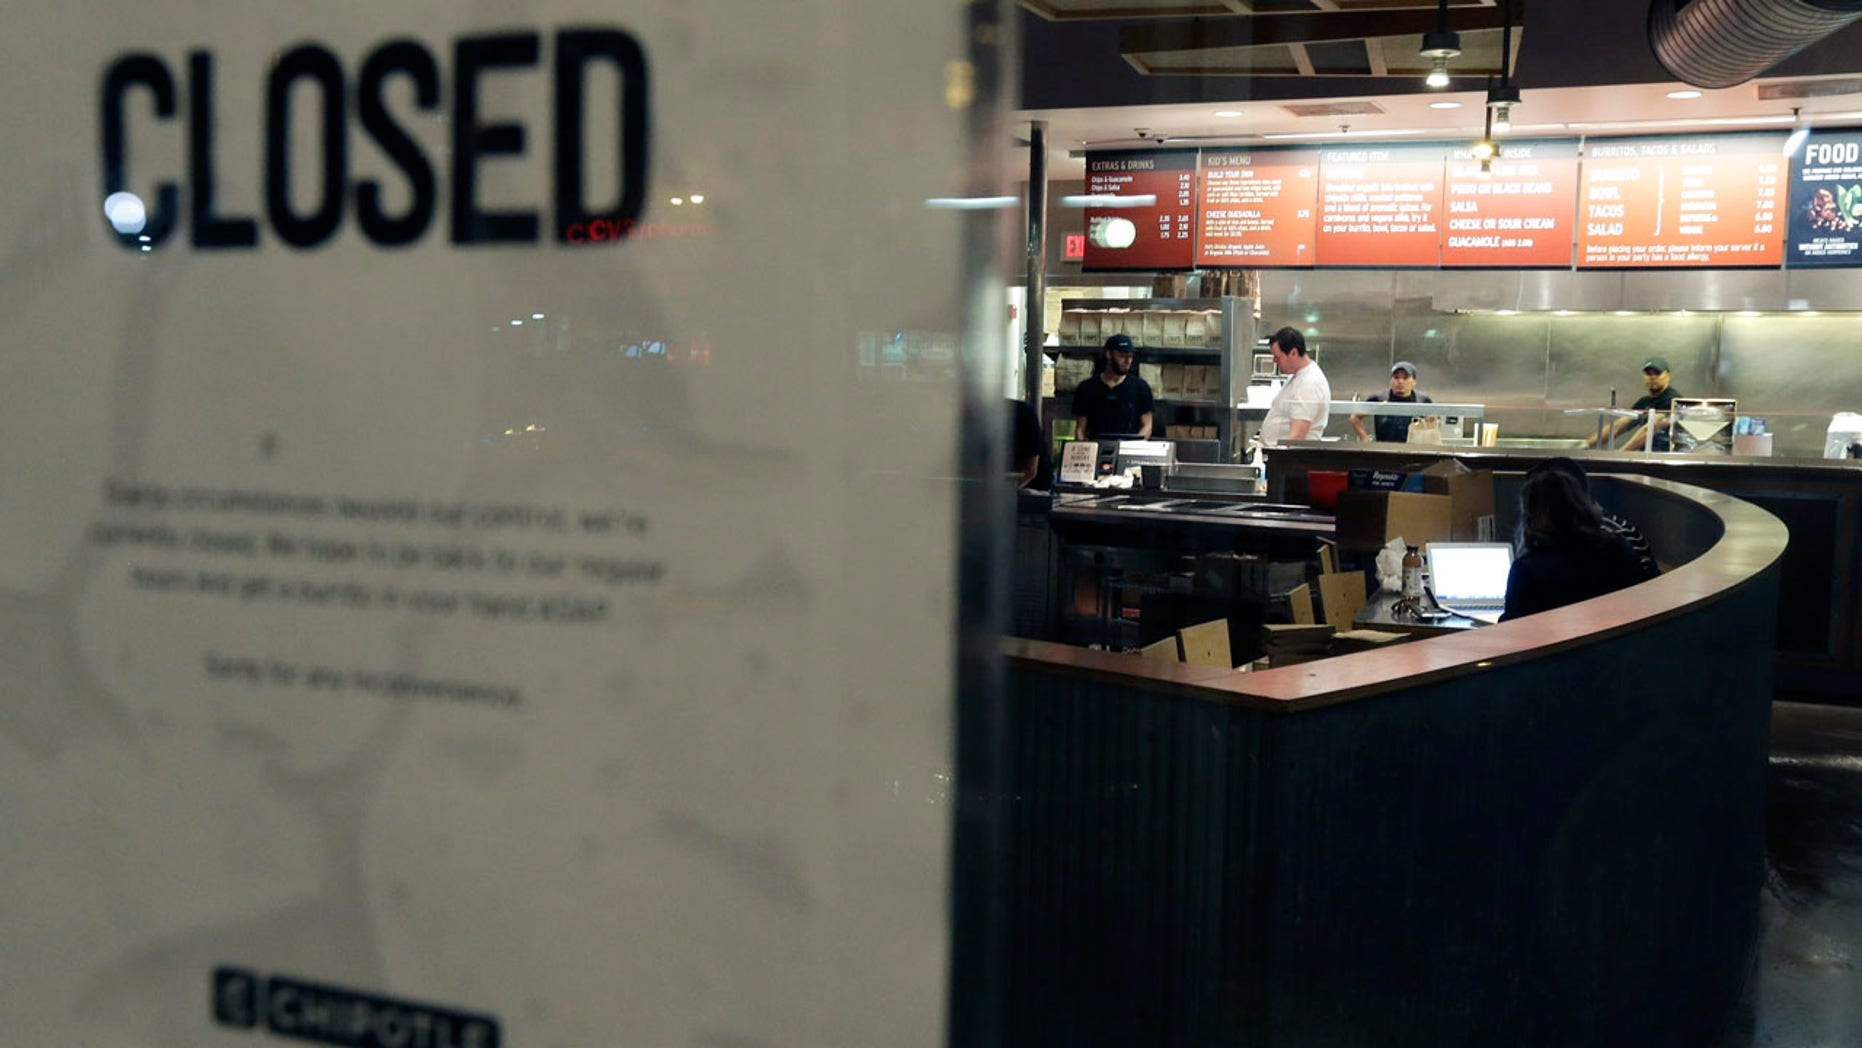 """Dec. 7, 2015: People stand inside a closed Chipotle restaurant in the Cleveland Circle neighborhood of Boston. Chipotle said late Monday that it closed the restaurant after several students at Boston College, including members of the men''s basketball team, reported """"gastrointestinal symptoms"""" after eating at the chain."""